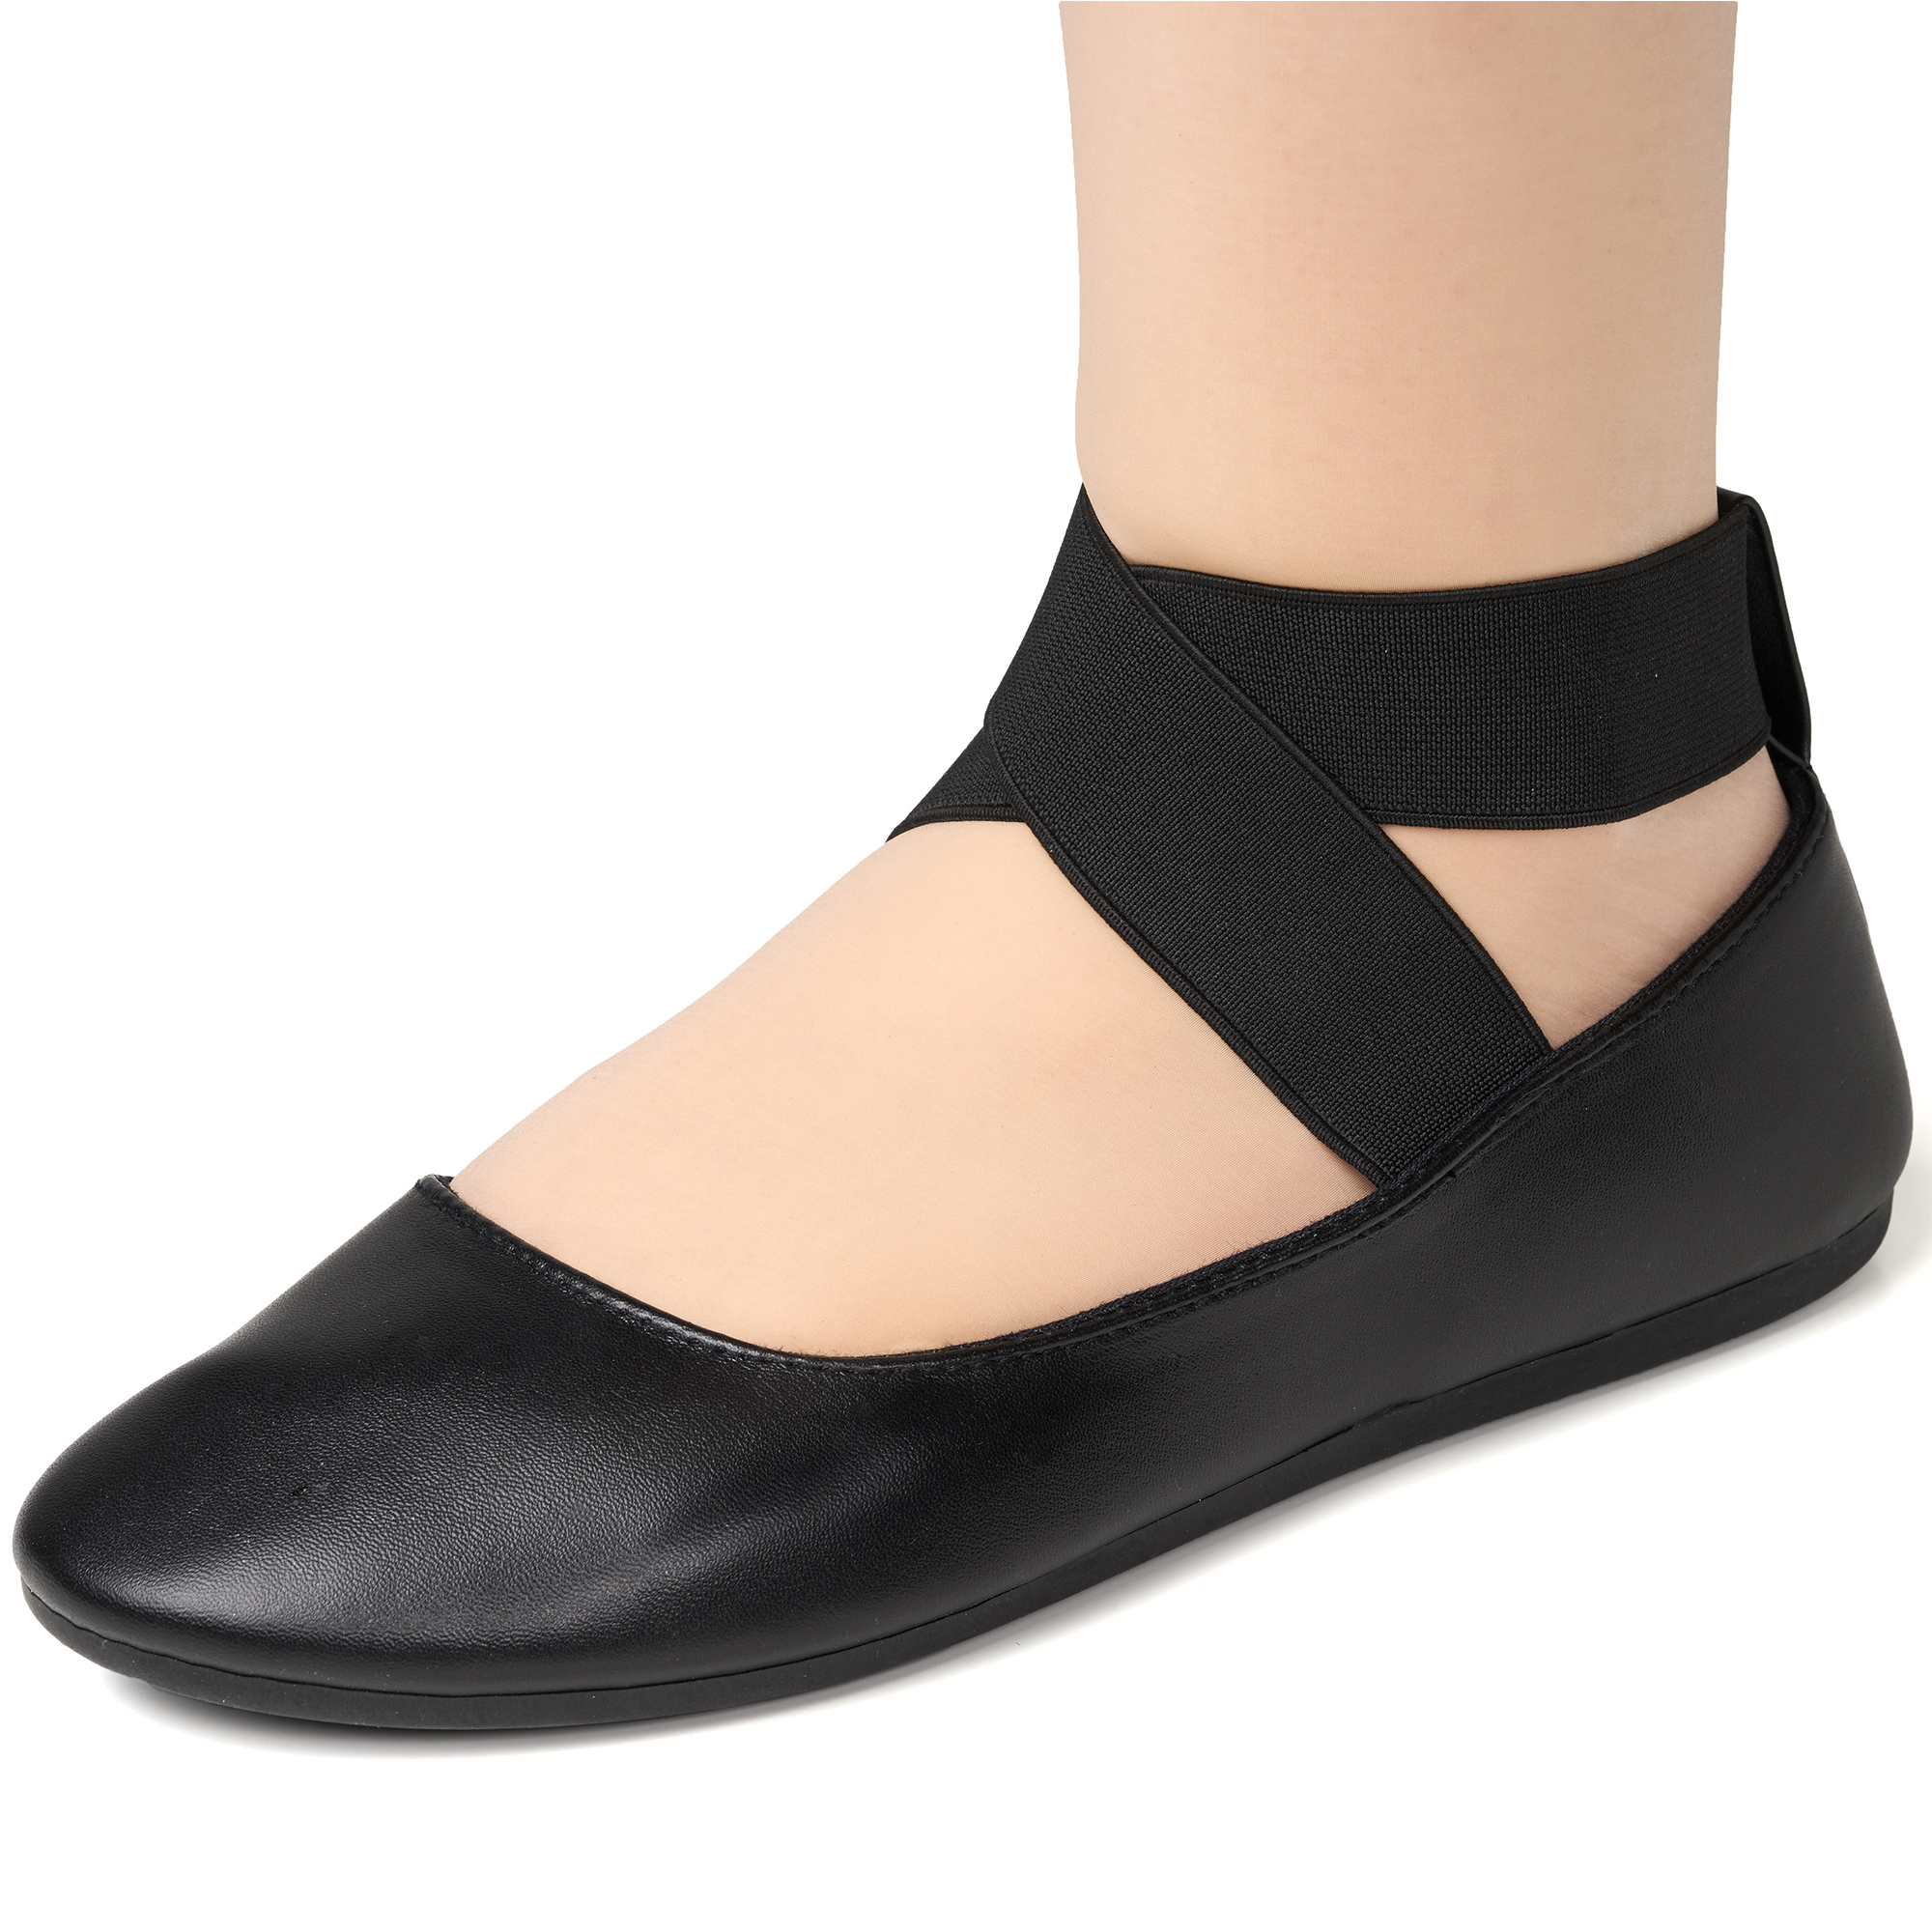 Alpine-Swiss-Peony-Womens-Ballet-Flats-Elastic-Ankle-Strap-Shoes-Slip-On-Loafers thumbnail 21